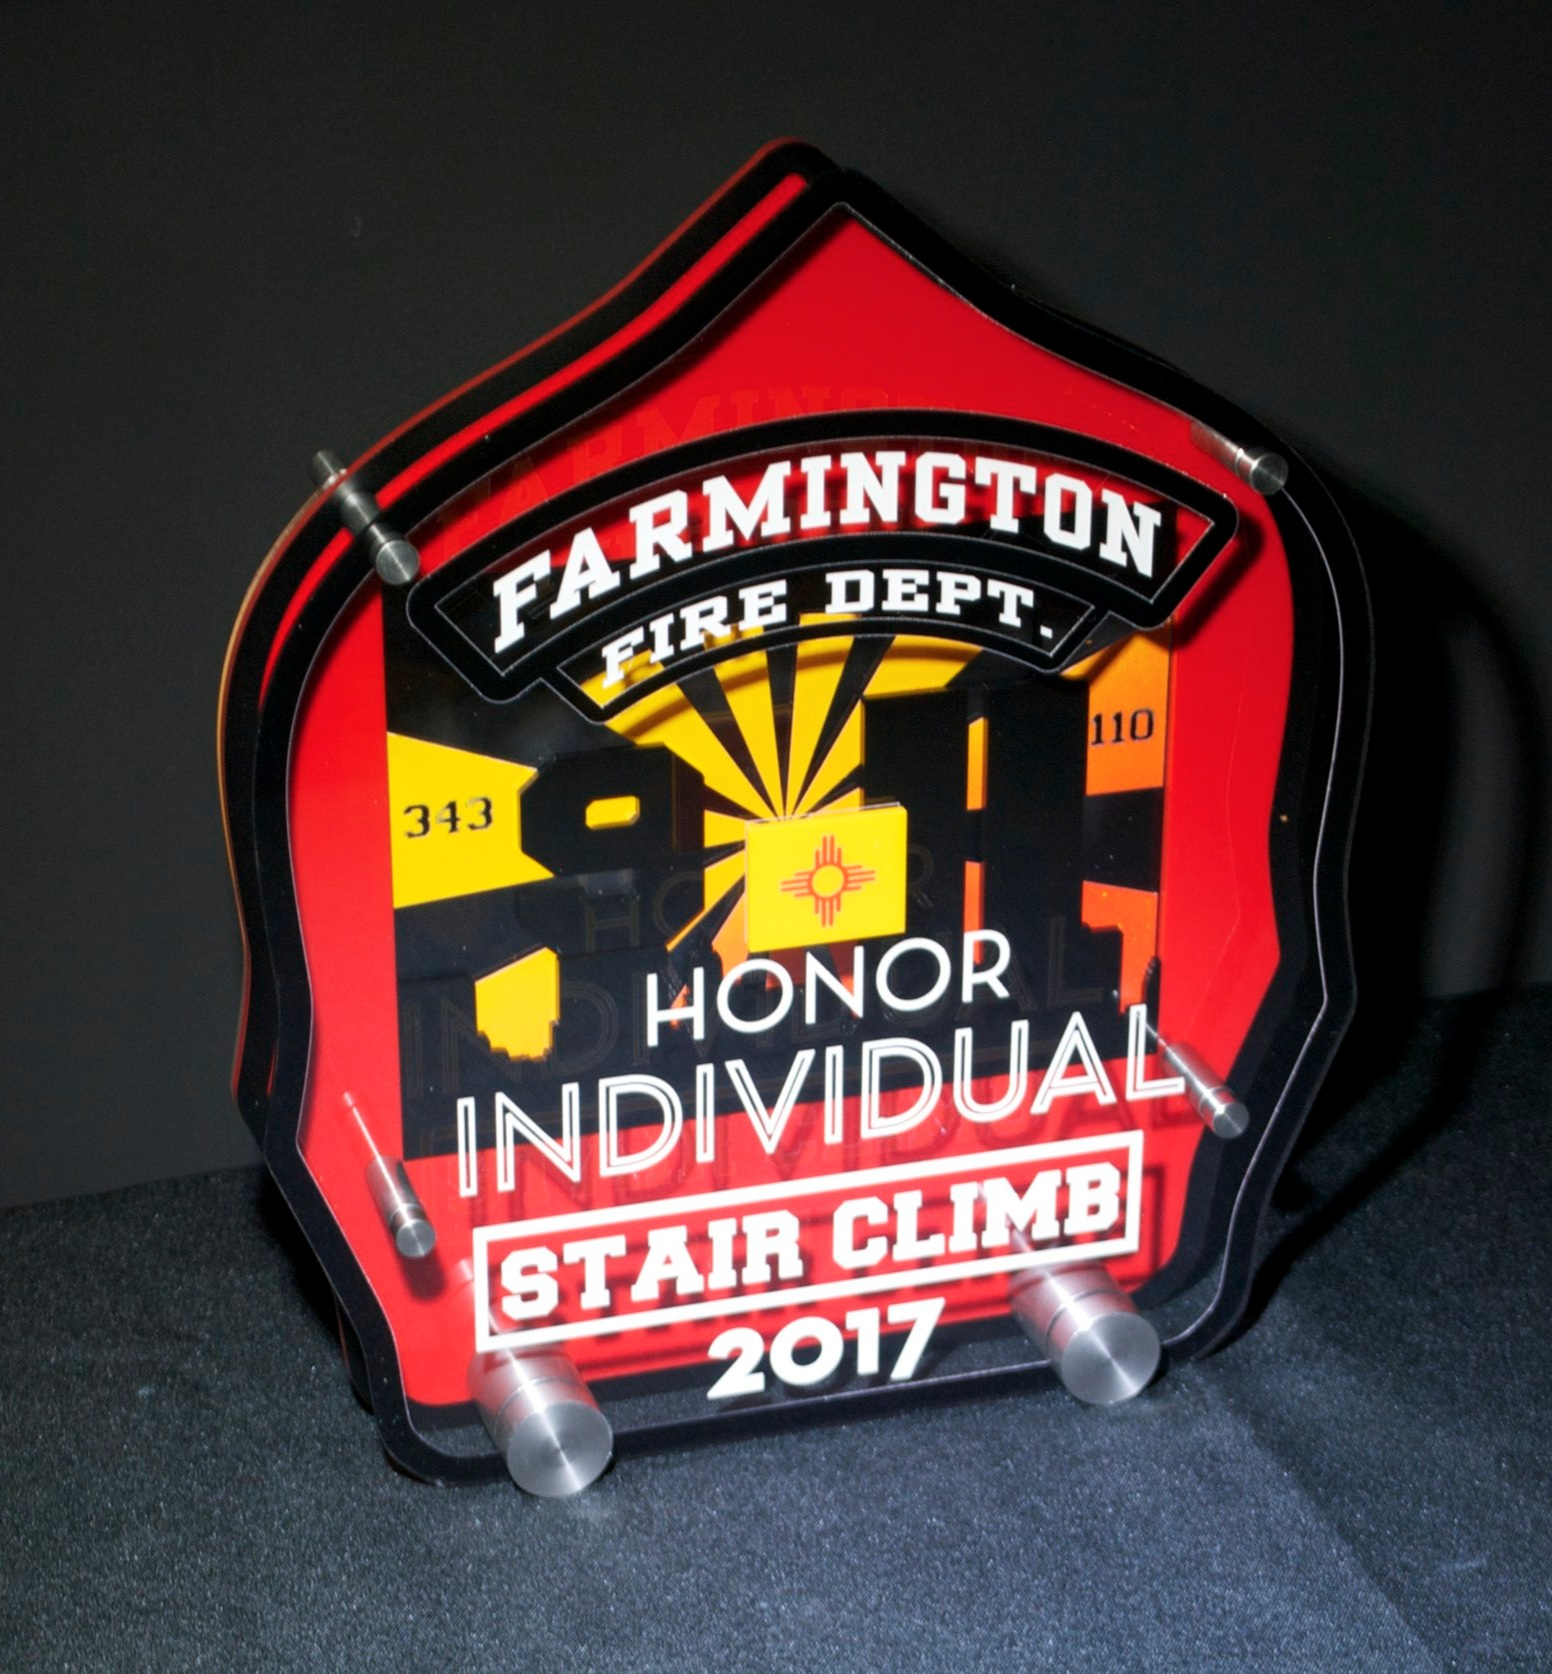 Fire Department - 2017 Stair Climb Award  Contact us for pricing information.